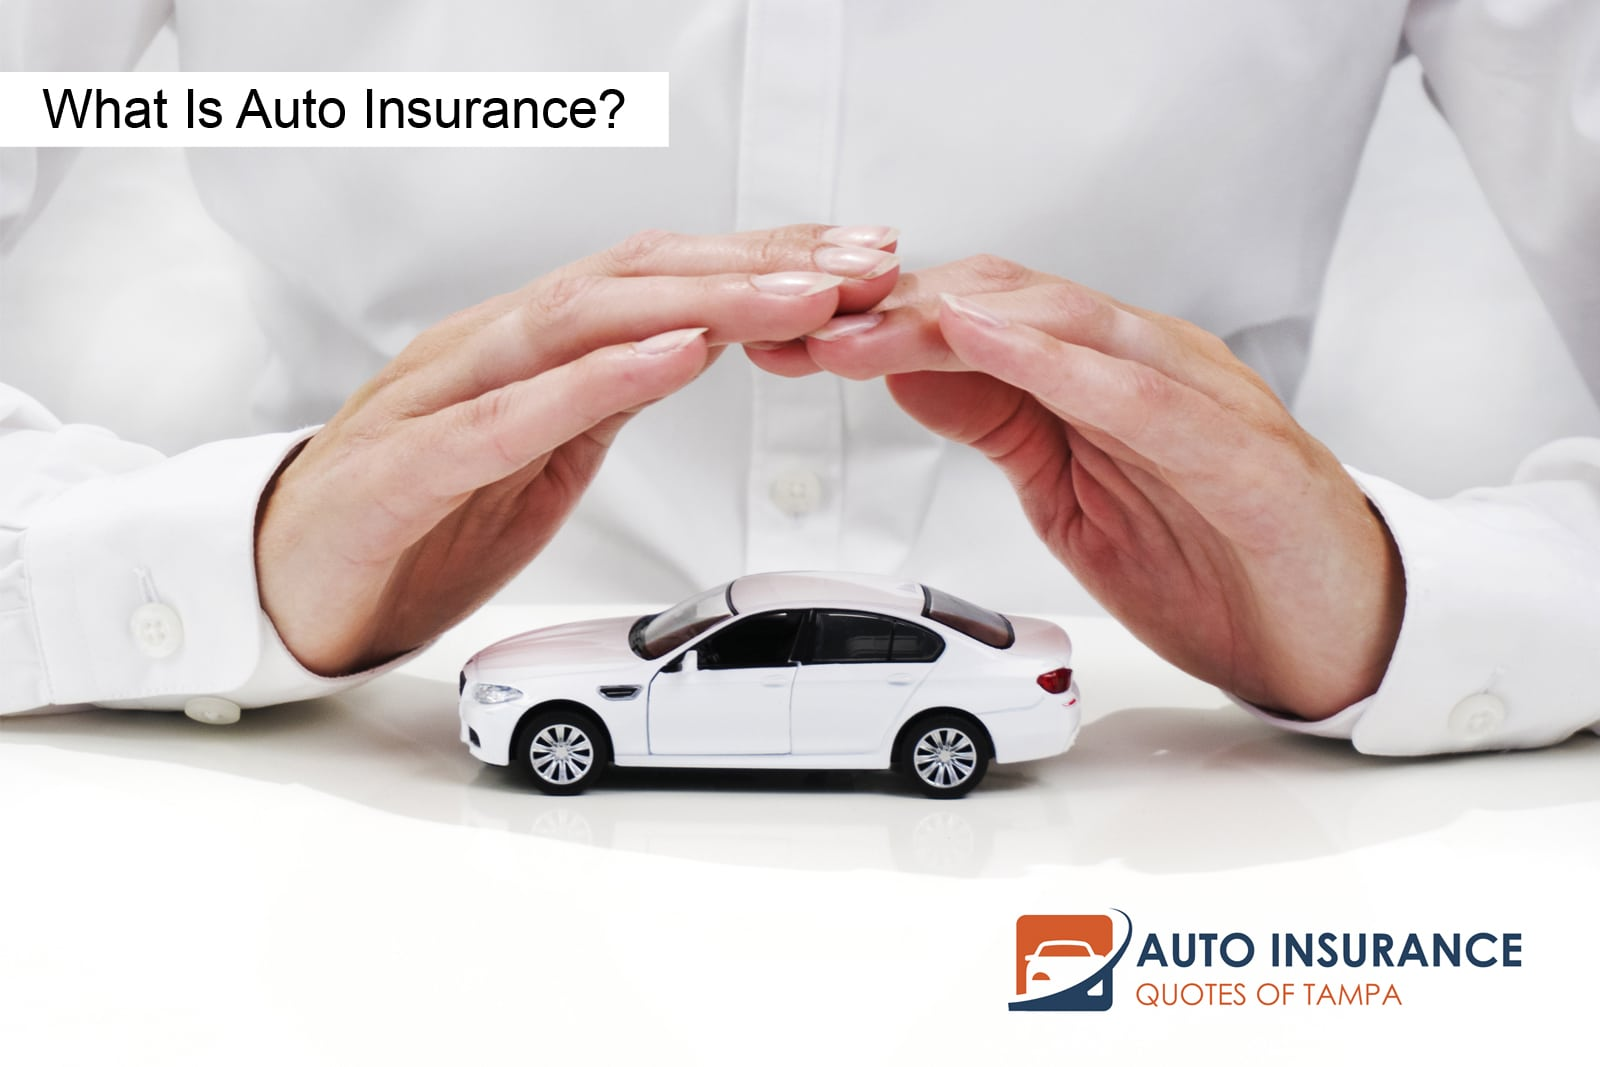 What Is Auto Insurance?